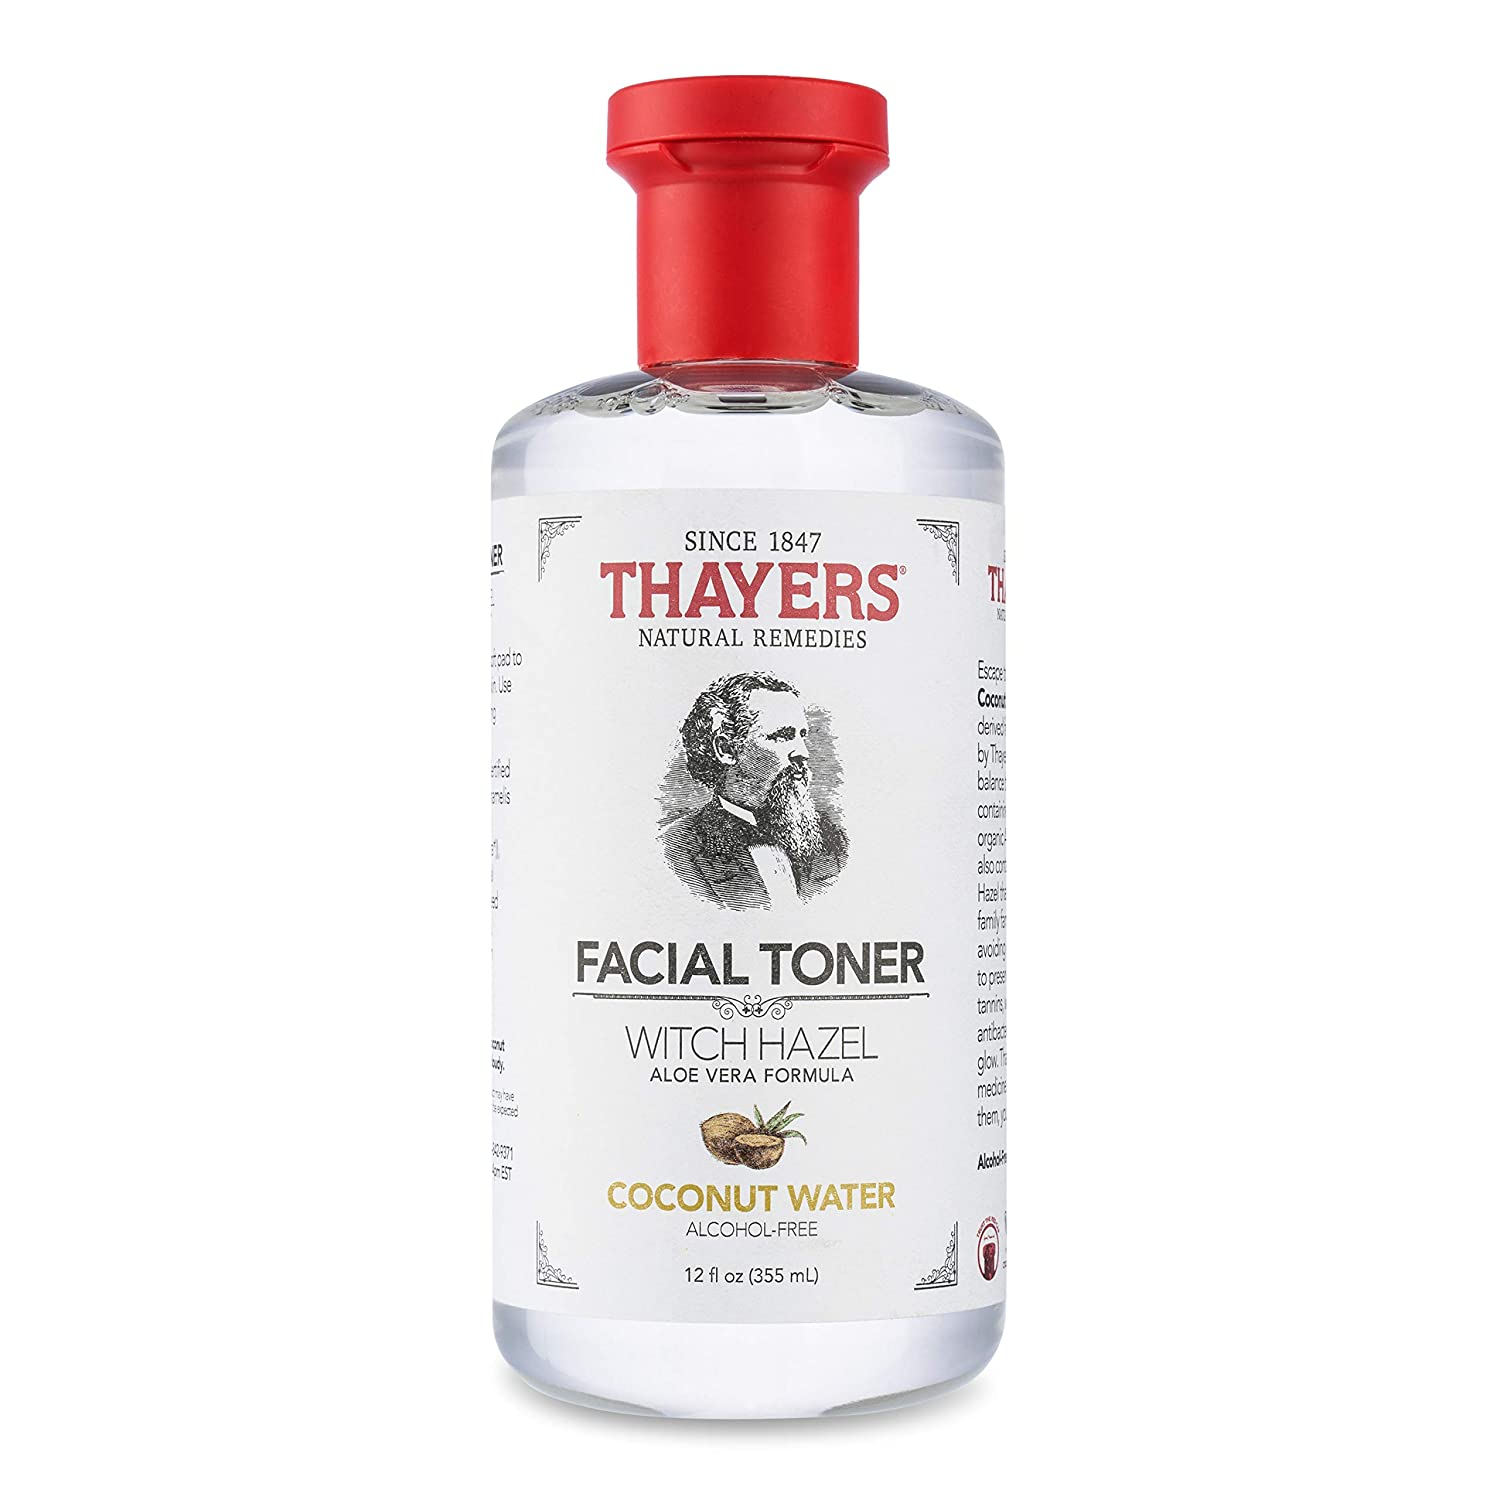 Thayers Alcohol-Free Coconut Water Witch Hazel Facial Toner with Aloe Vera Formula - 12 oz